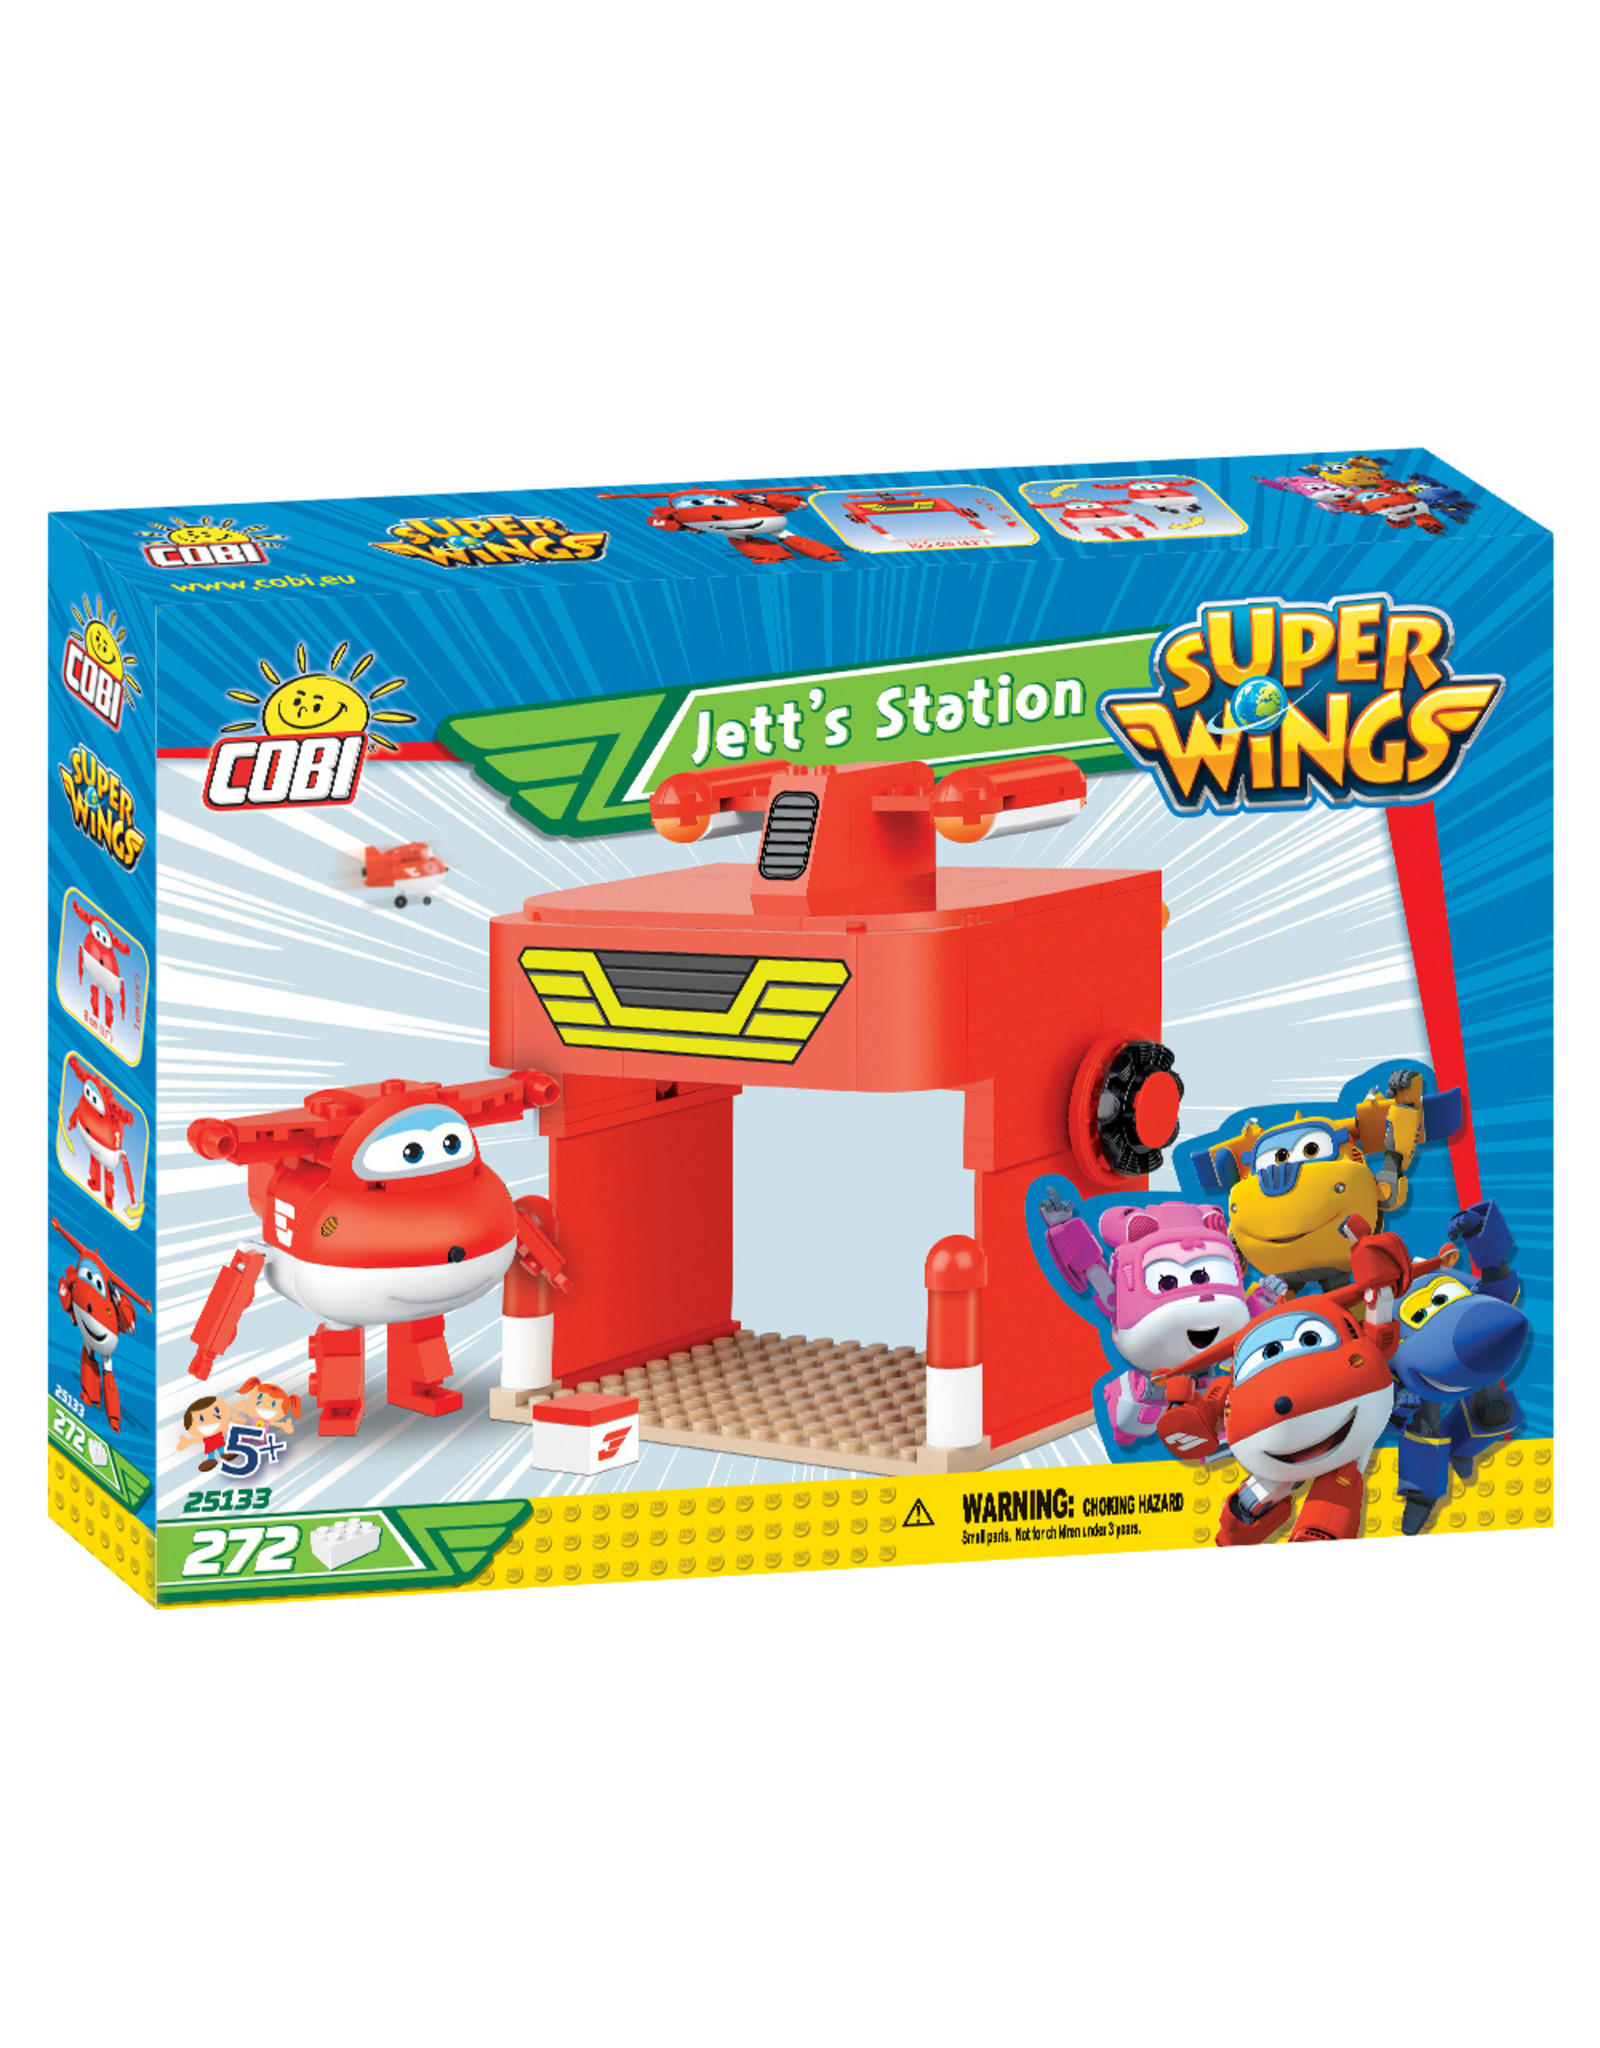 COBI Cobi 25133 Super Wings Jetts Station